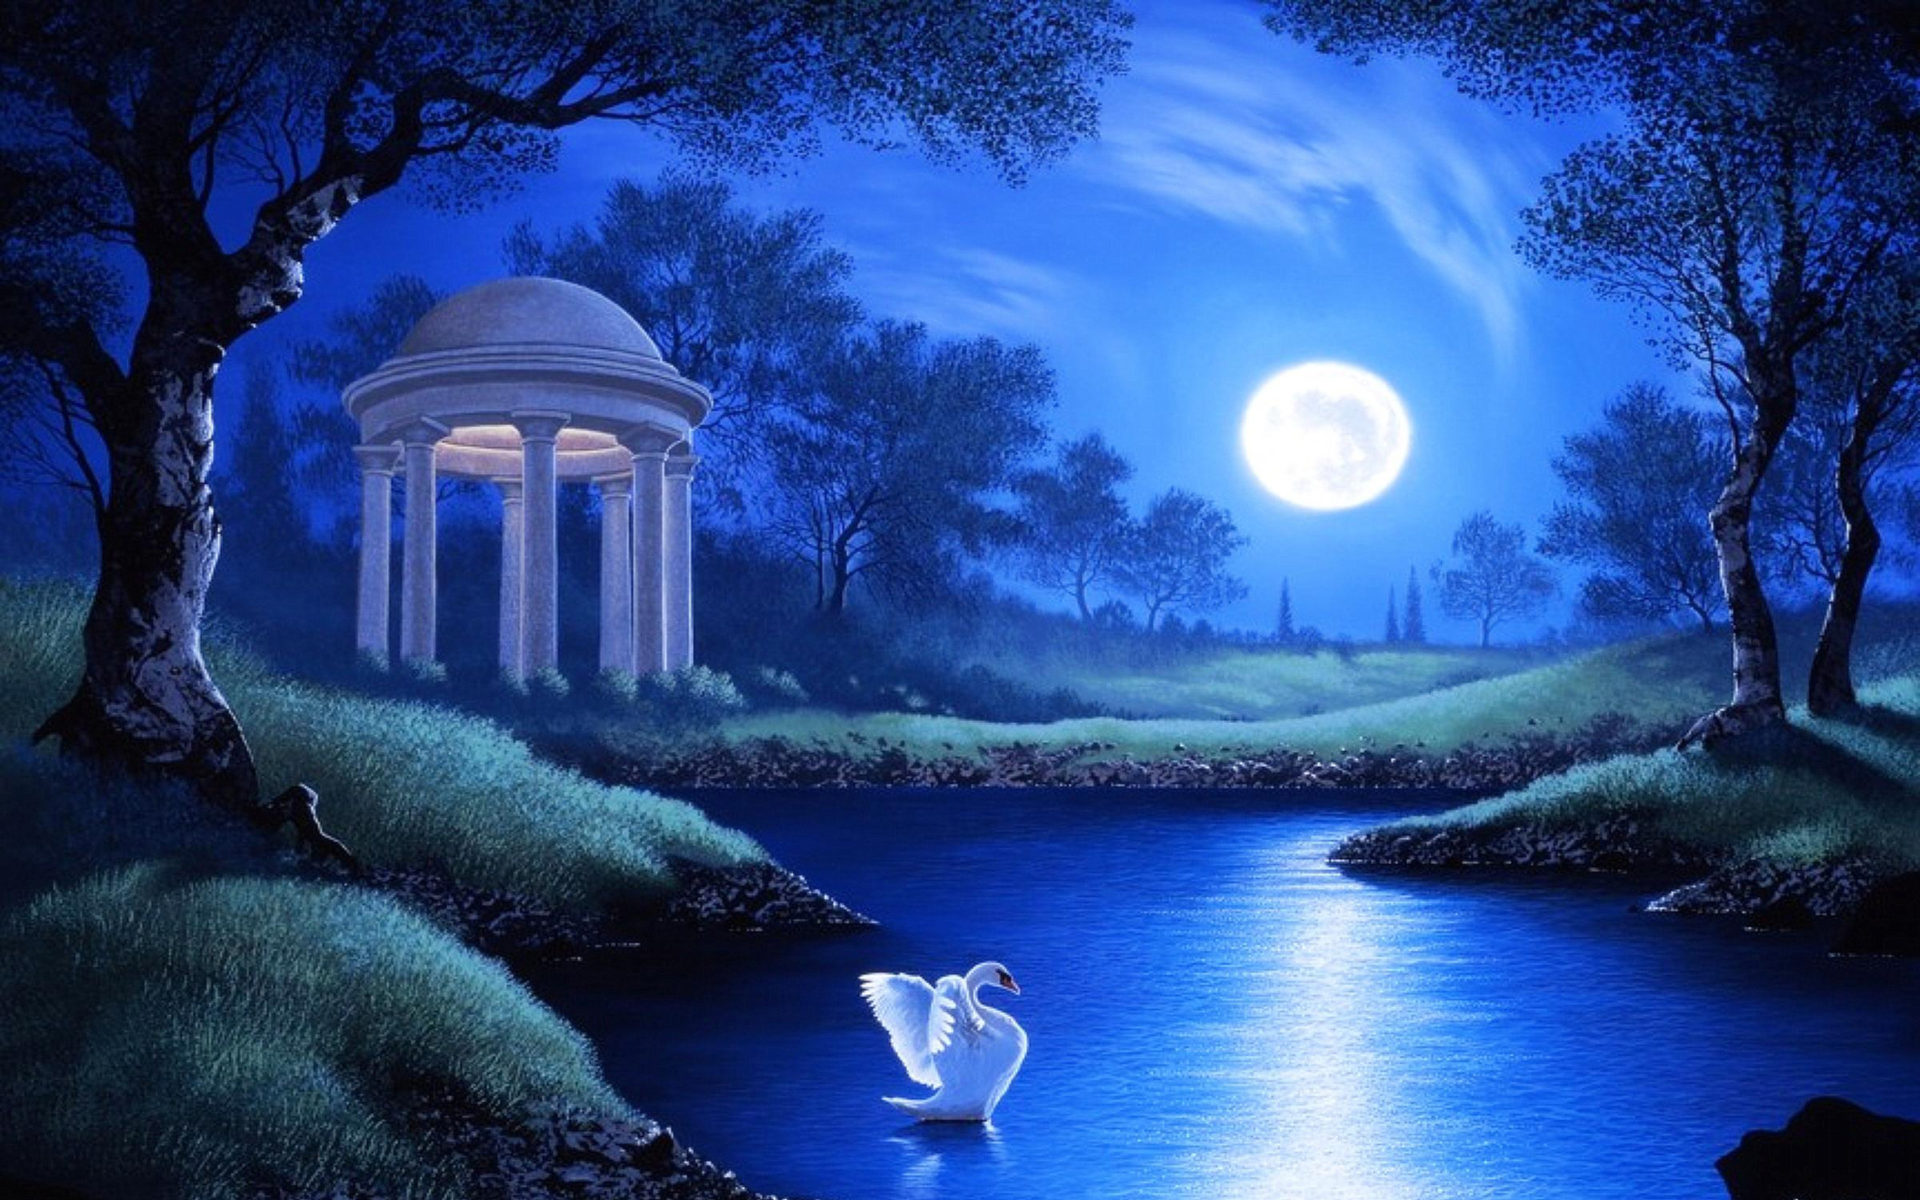 Sparkly Magical Girl Wallpaper Swan Lake Night Full Moon Trees Grass Hd Wallpaper